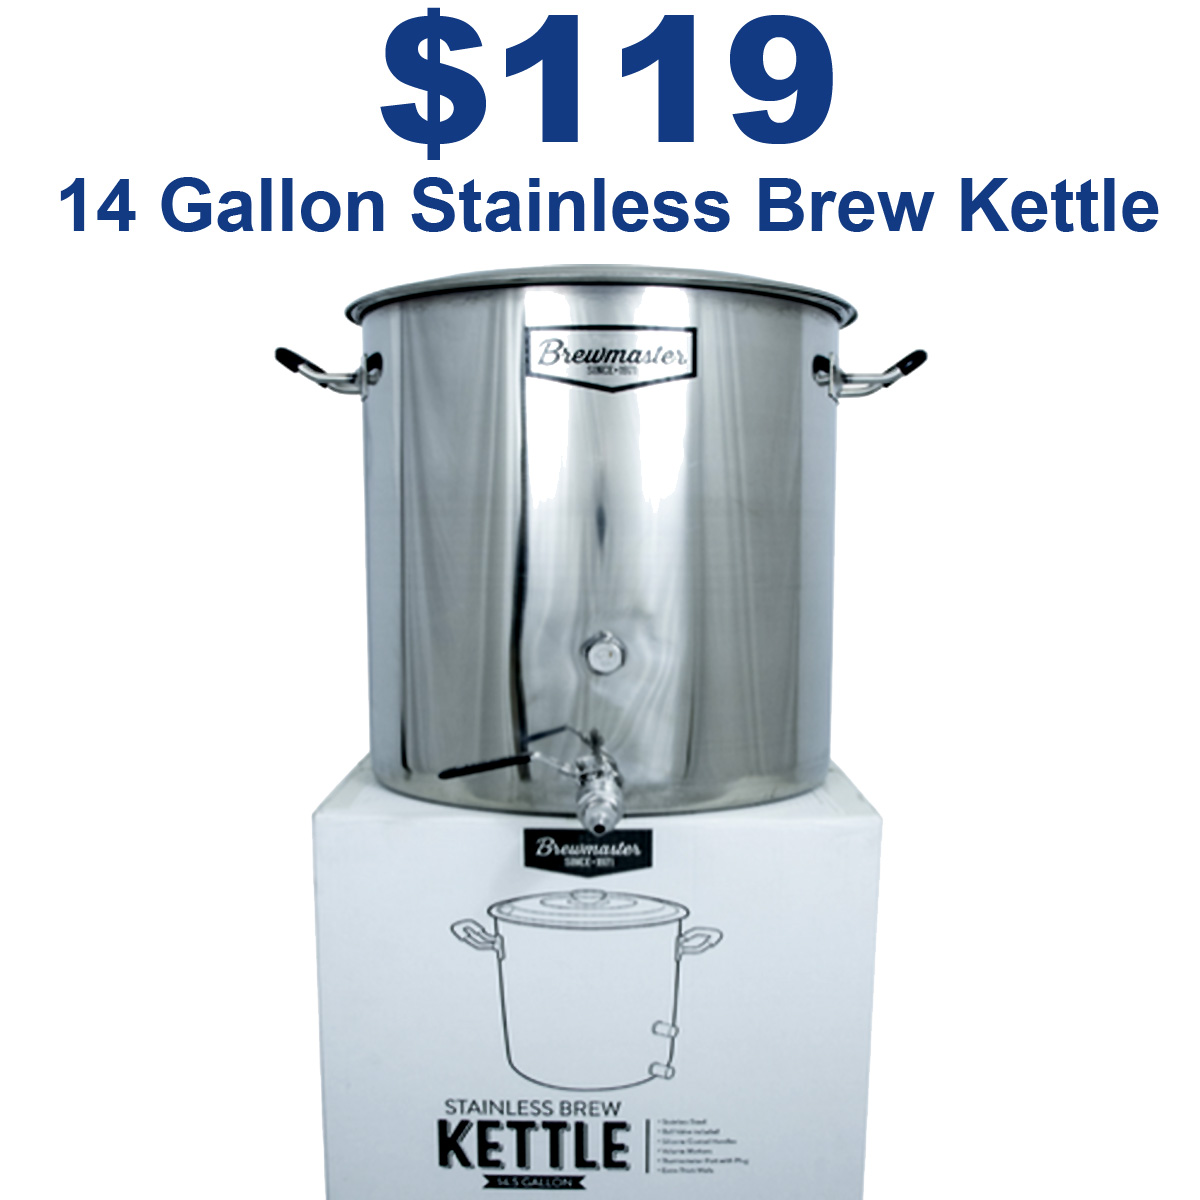 MoreBeer Just $119 for a 14 Gallon Brewmaster Stainless Steel Brew Kettle Coupon Code Coupon Code